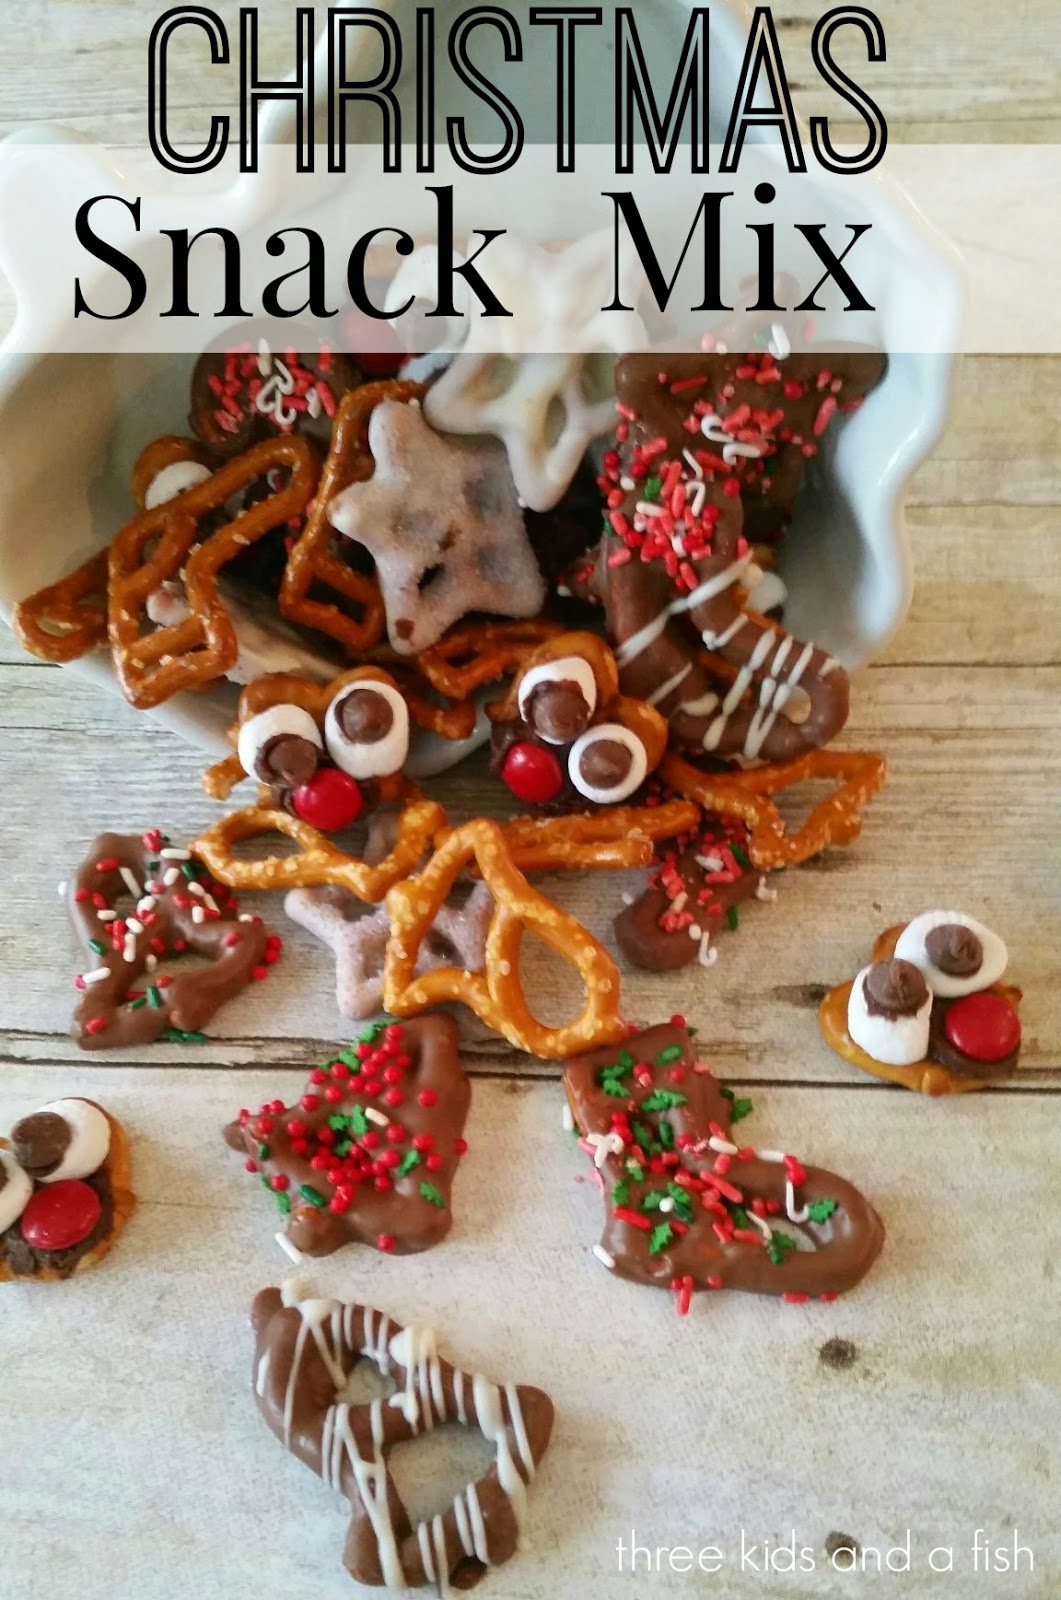 three kids and a fish: Christmas Snack Mix